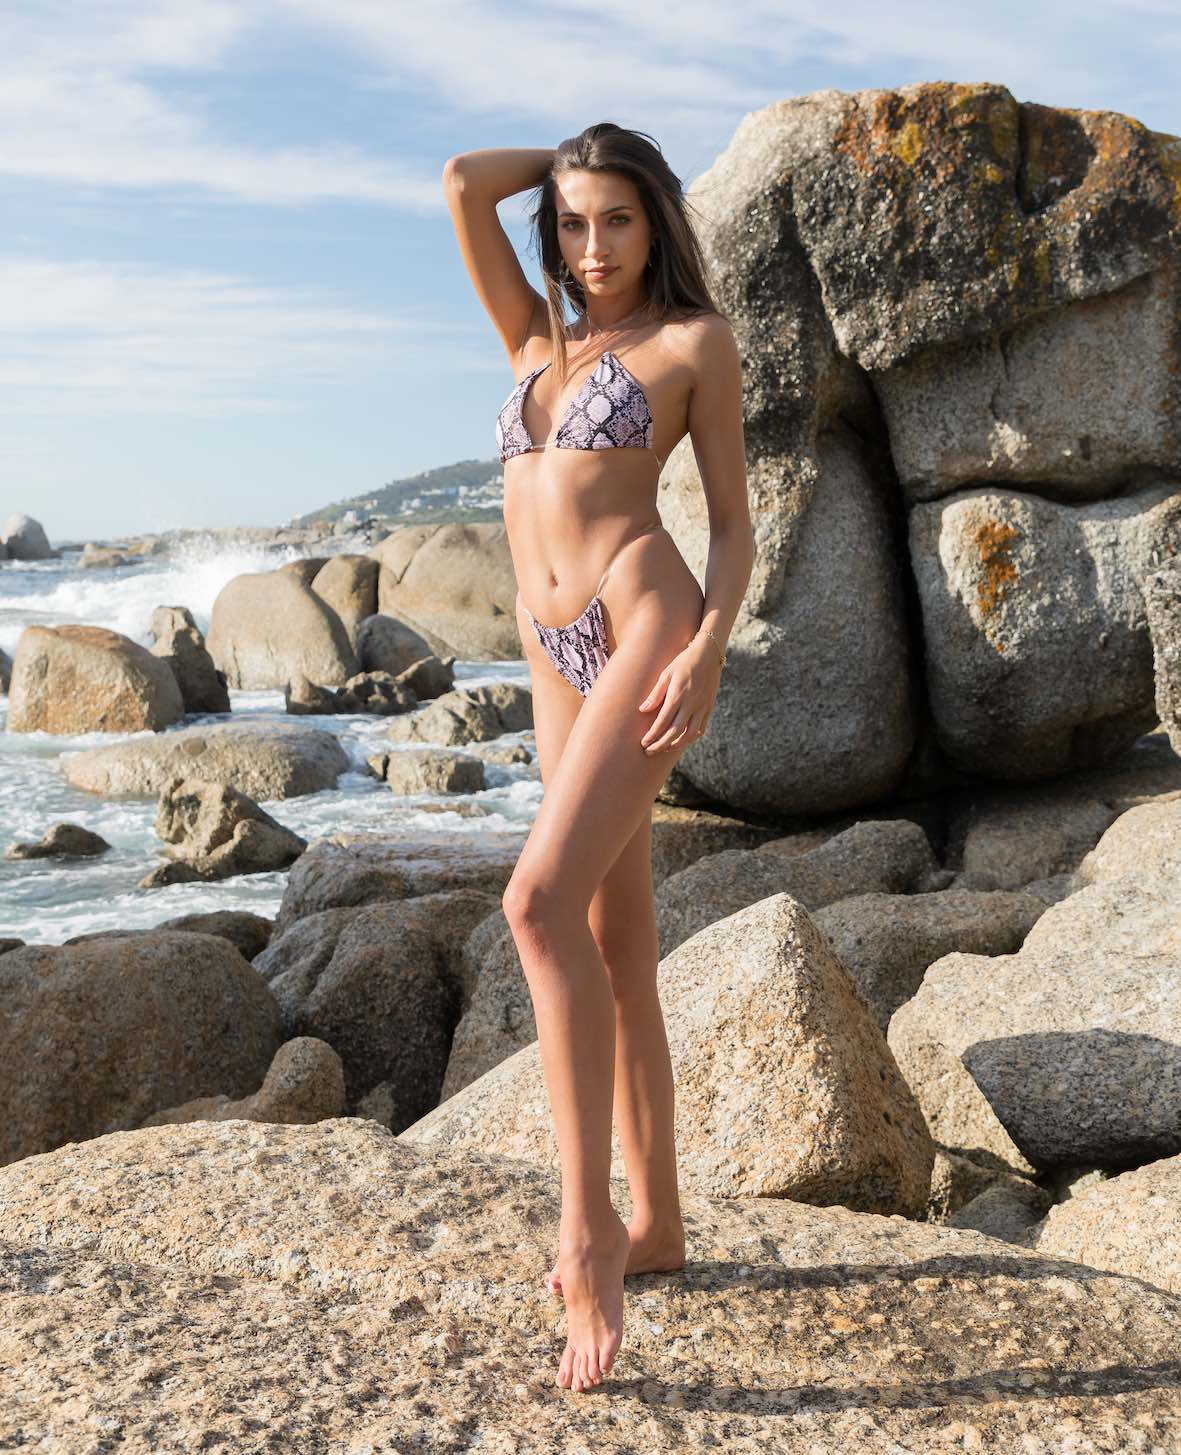 Our South African Girls feature with Tarryn Grung